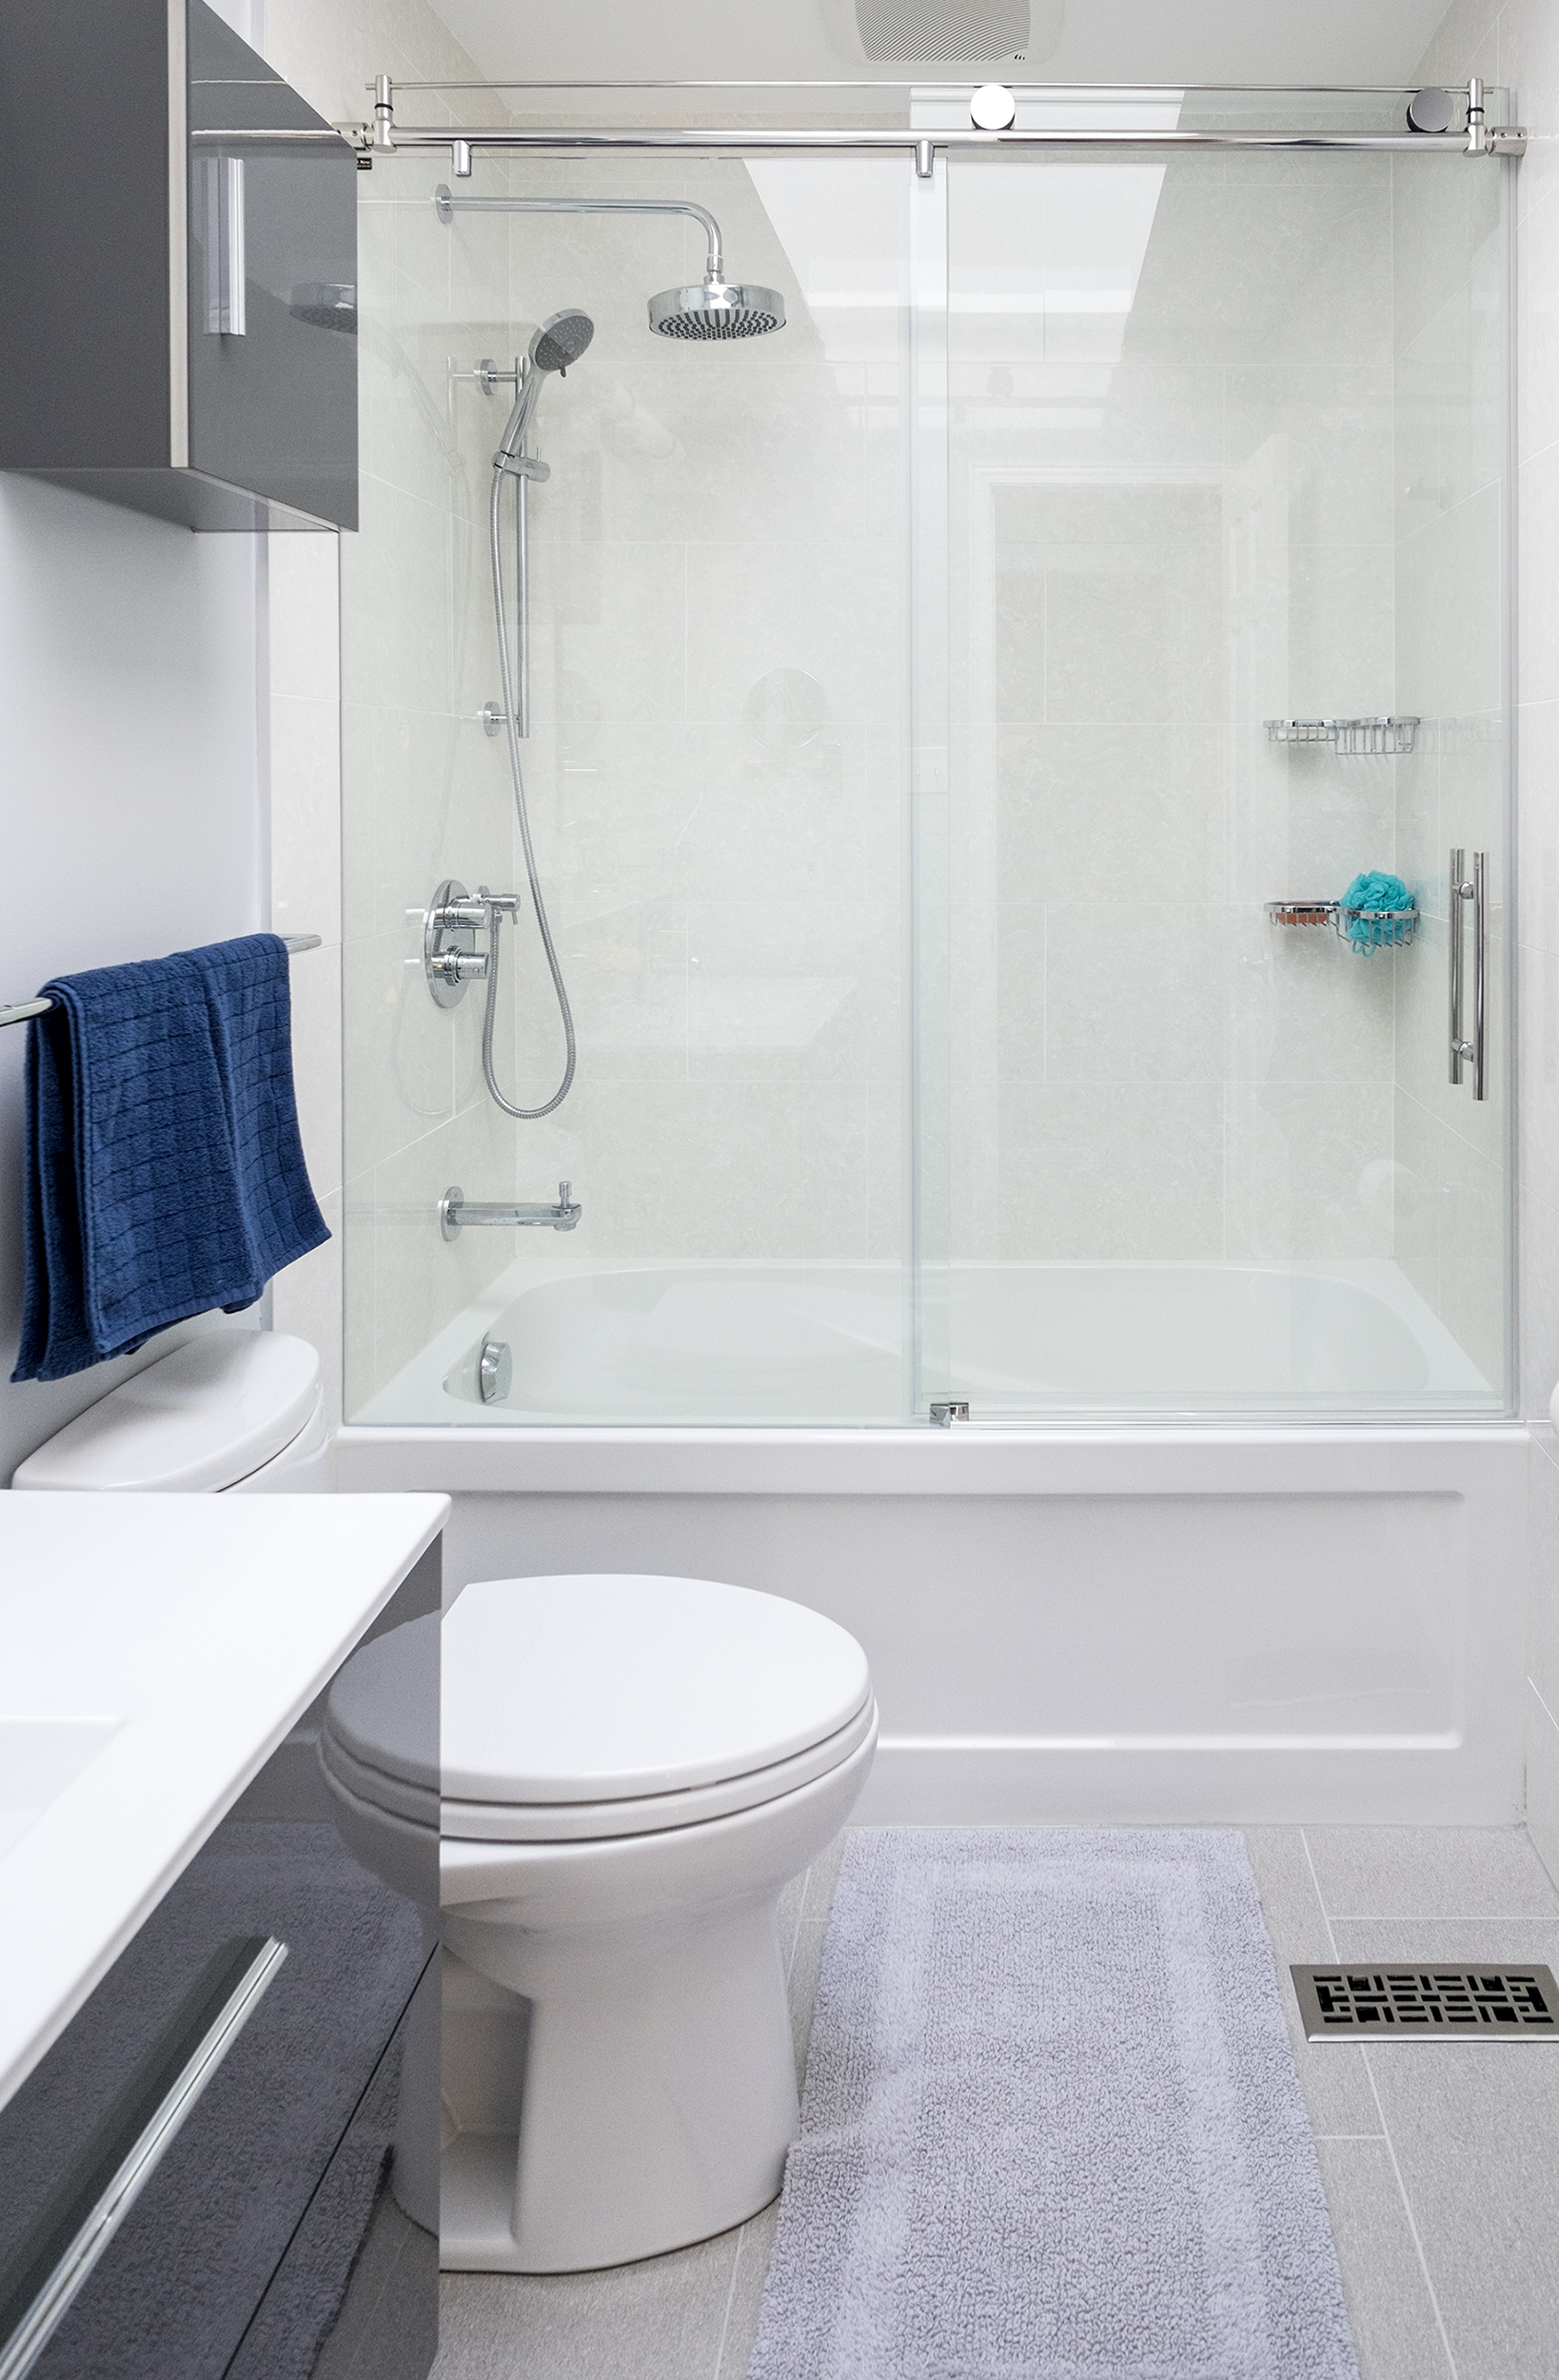 LowCost Bathroom Remodels Surdus Remodeling - Low cost bathrooms